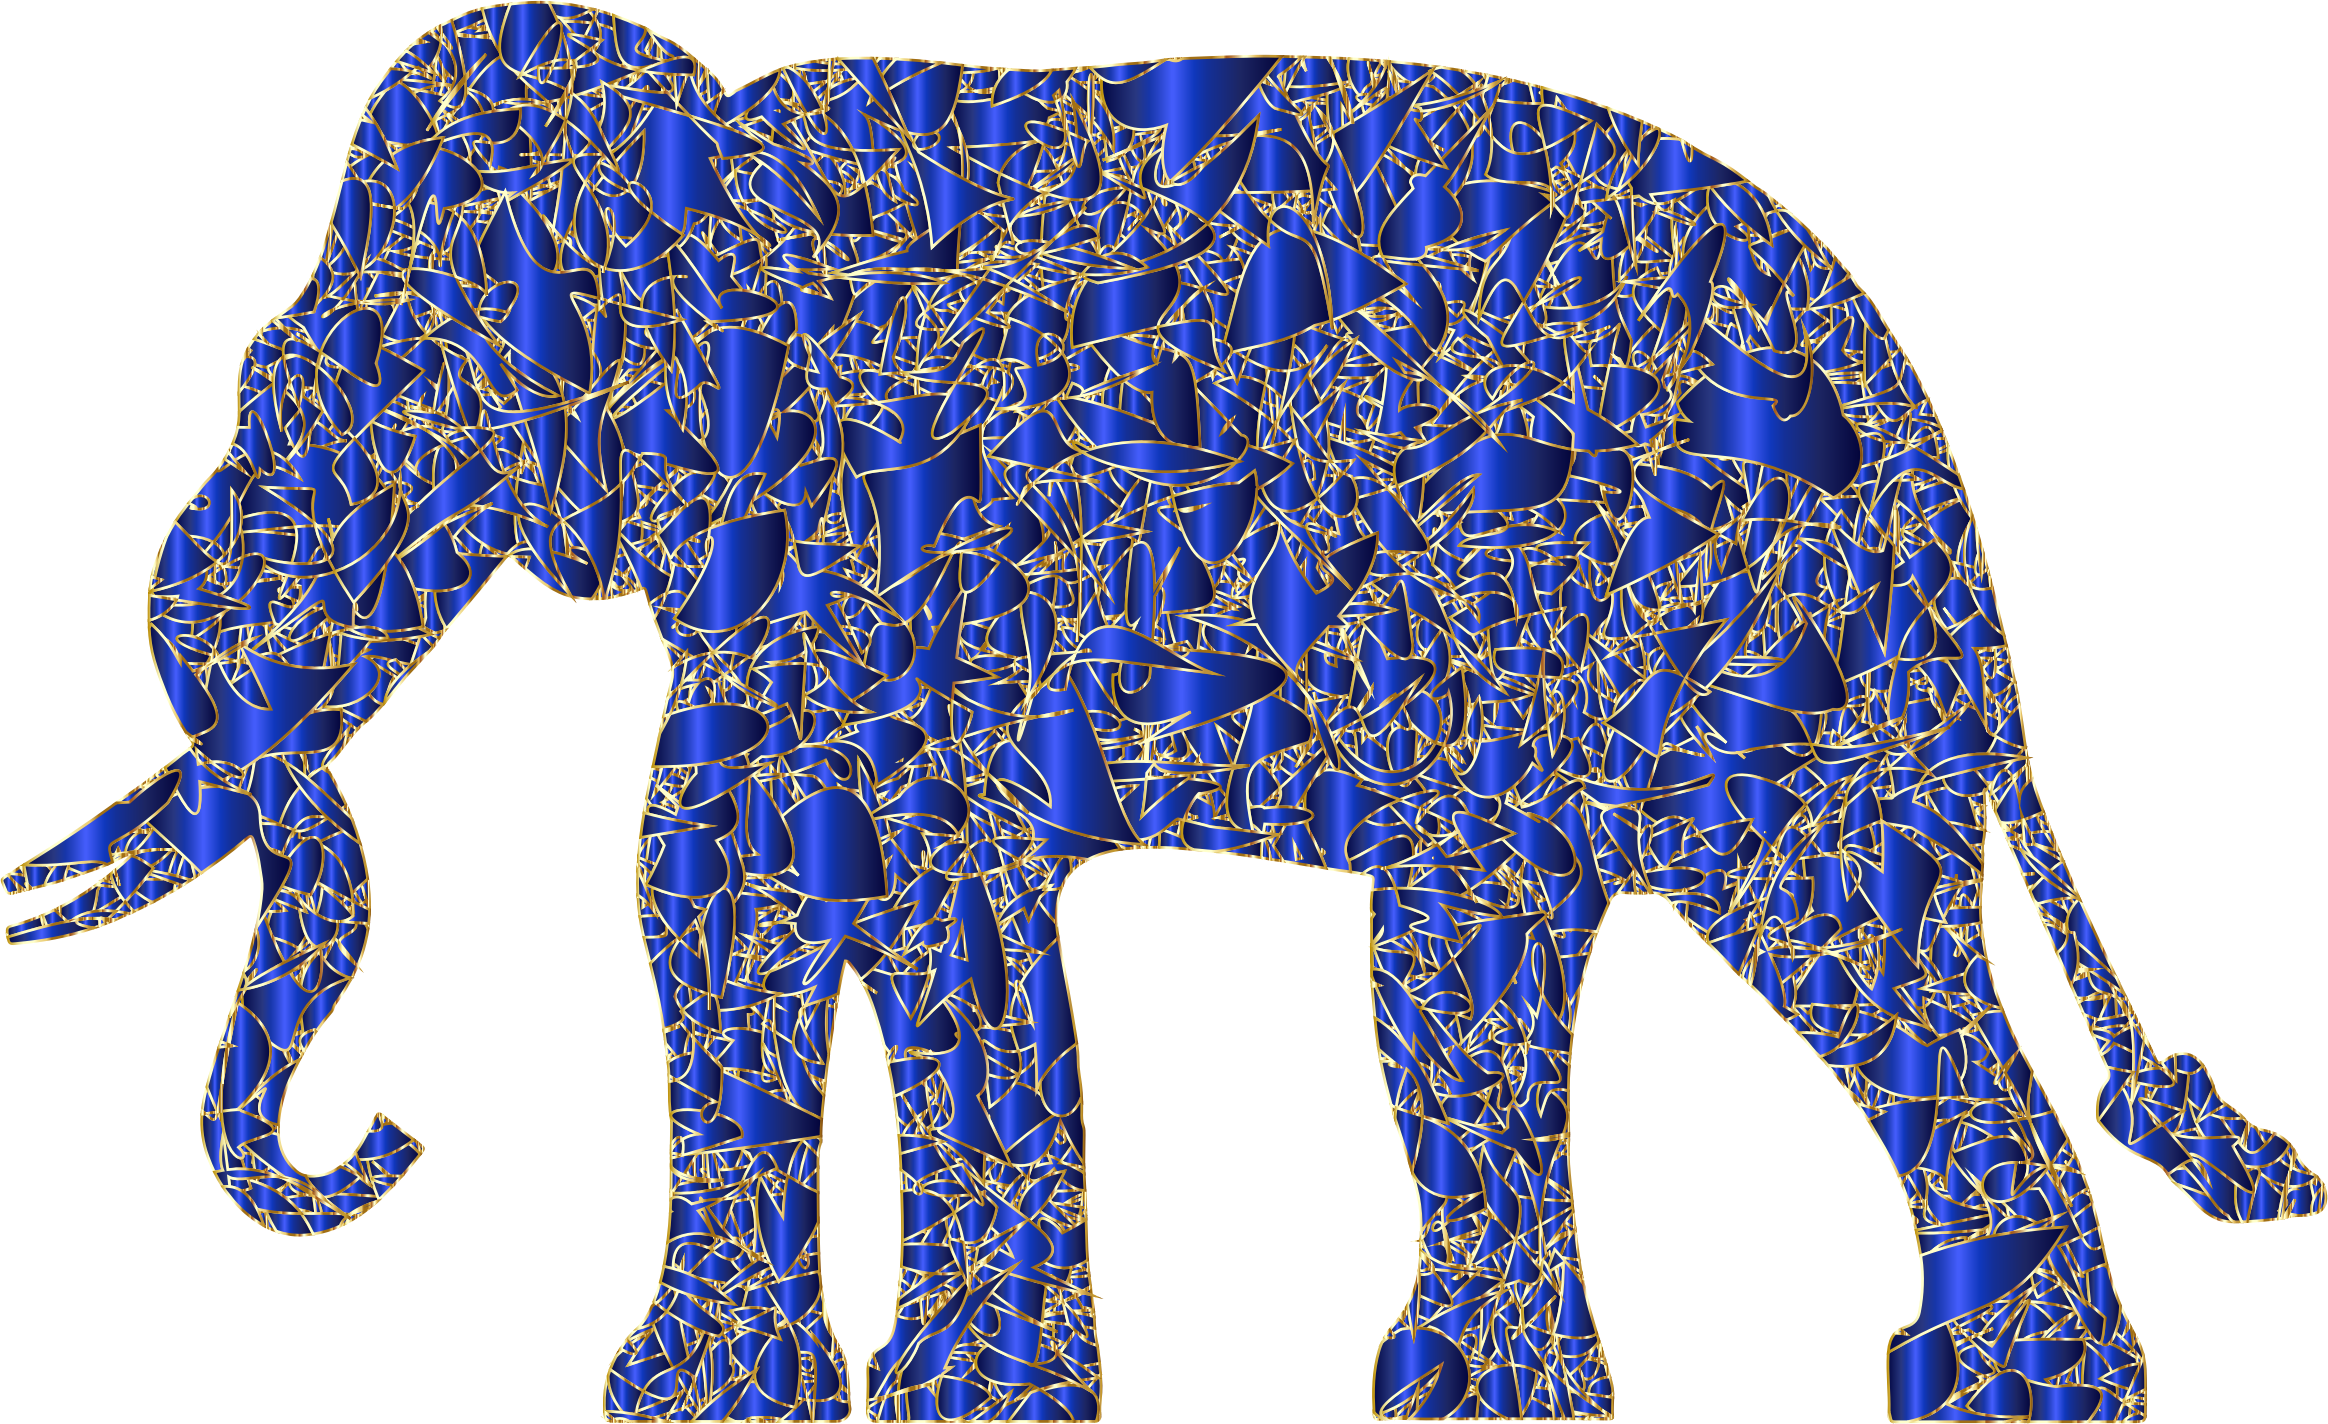 Clipart elephant rainbow. Modern art reactivated big